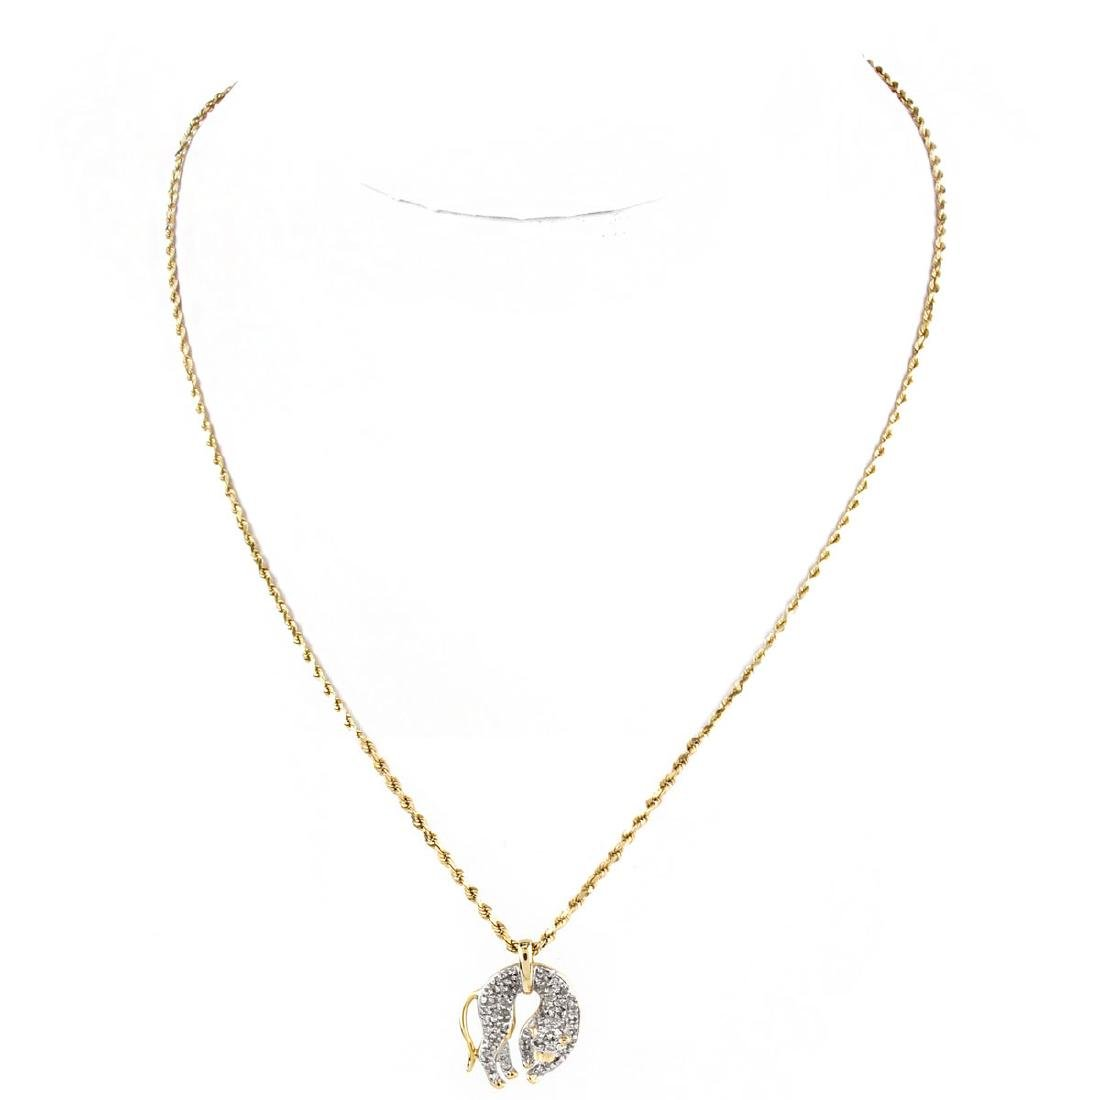 Diamond and 14K Gold Cat Pendant Necklace - 2